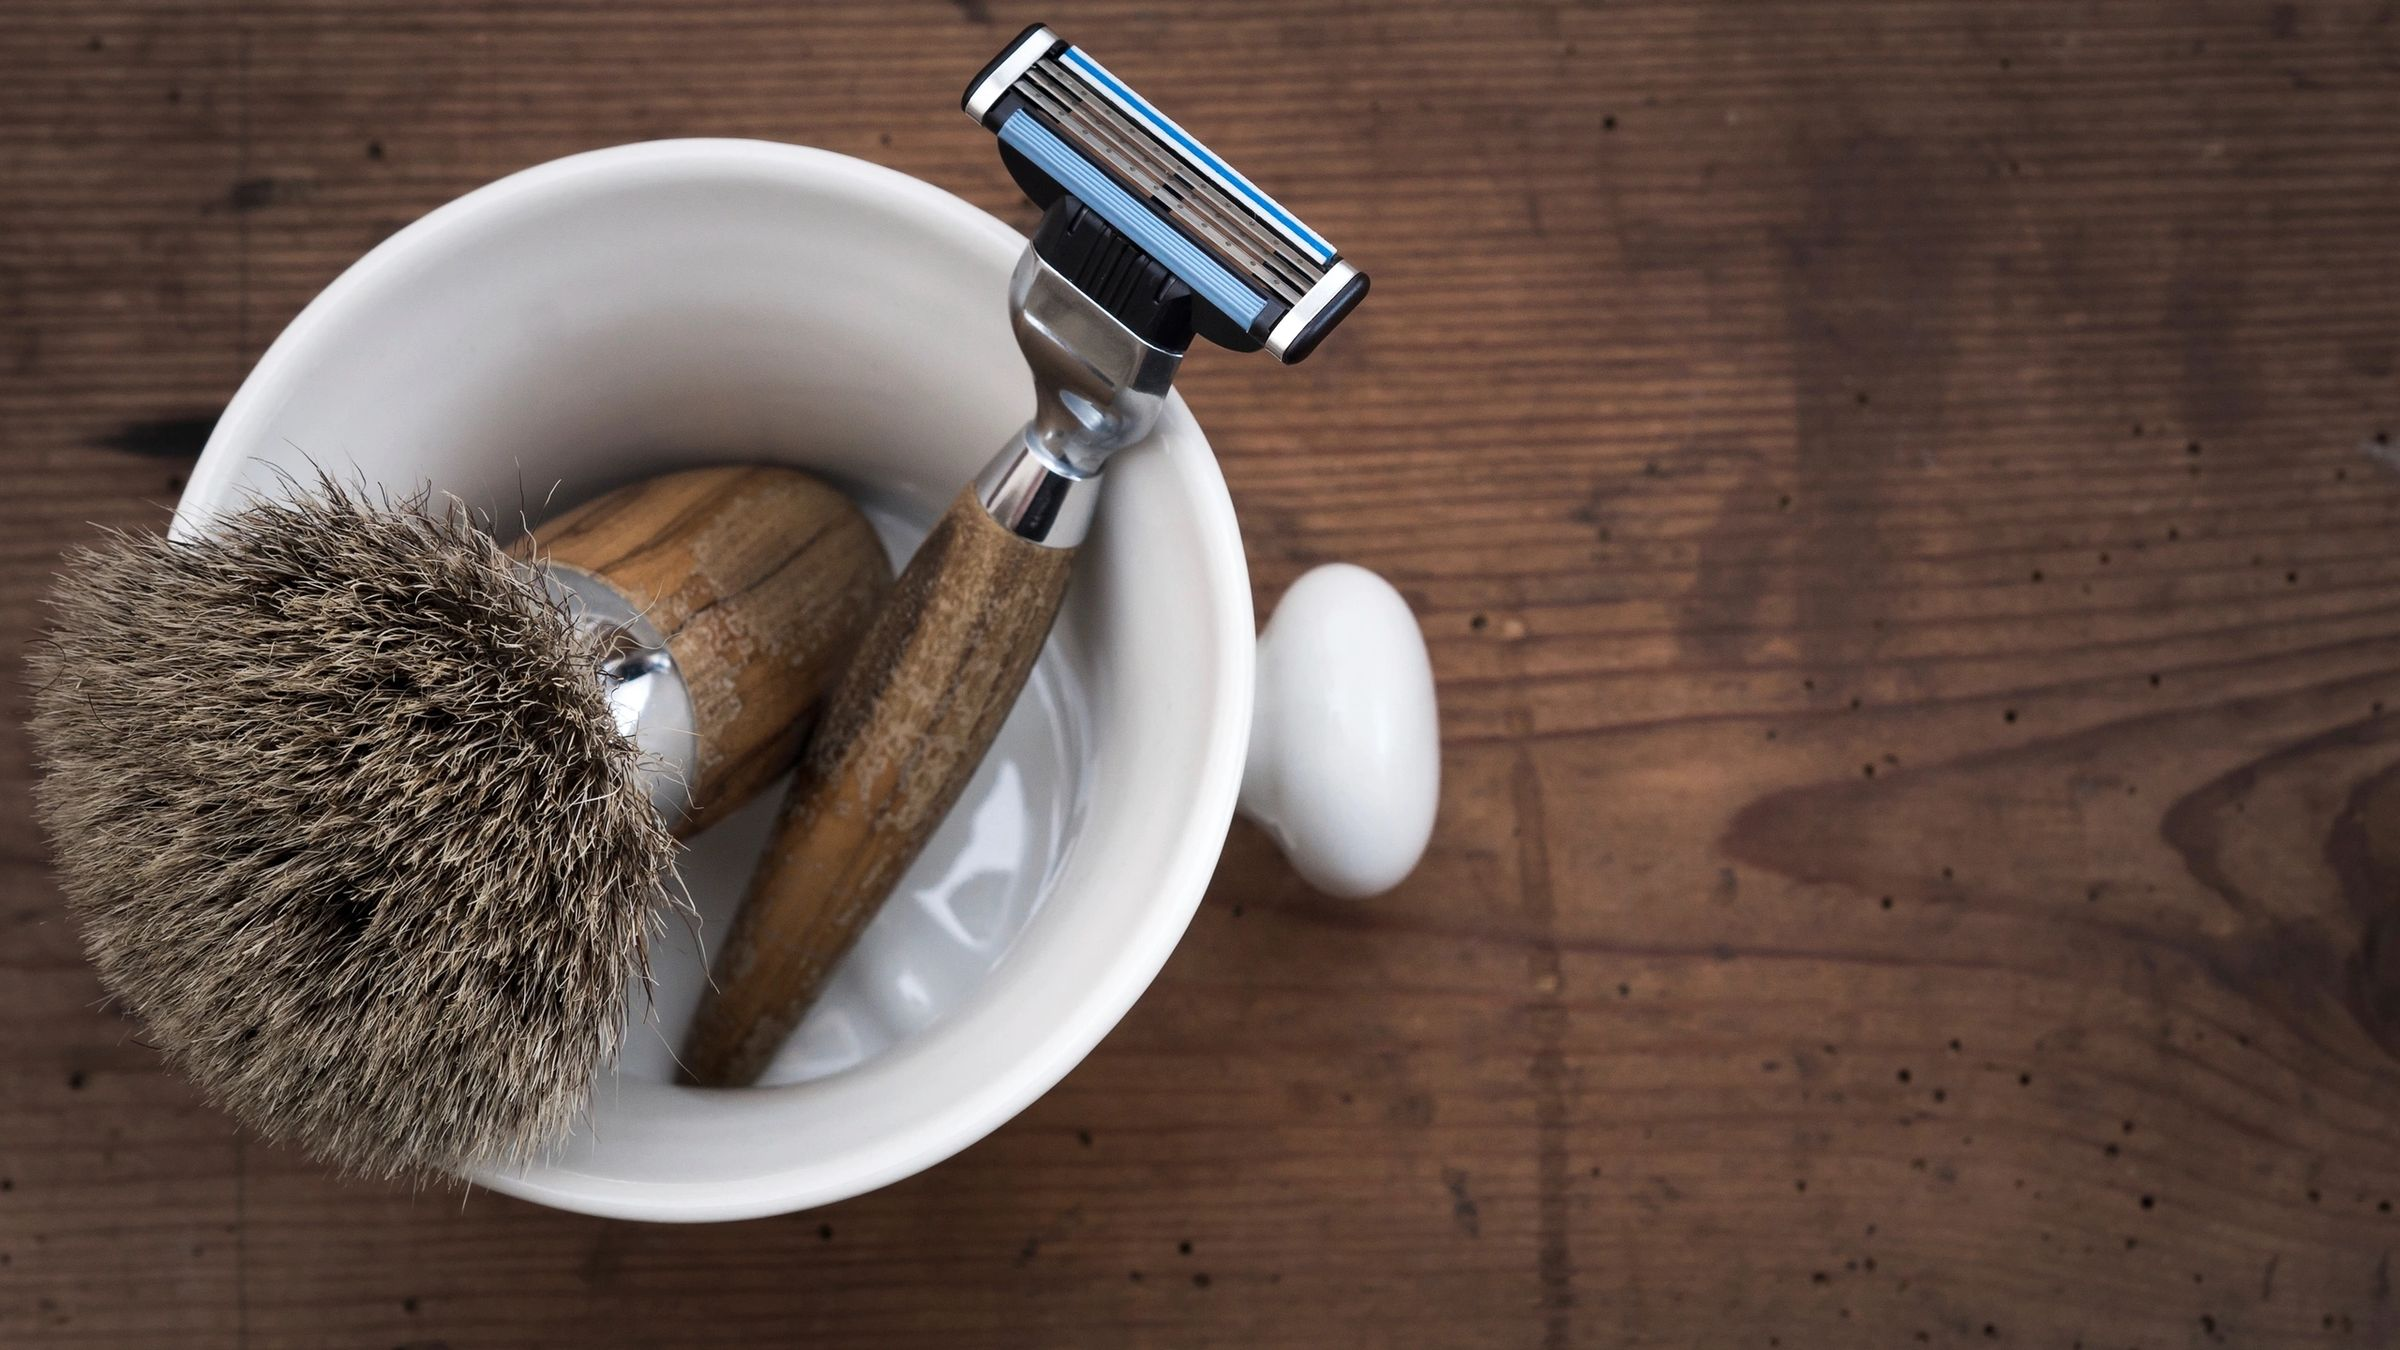 12 Men's Grooming Products To Add To Your Medicine Cabinet